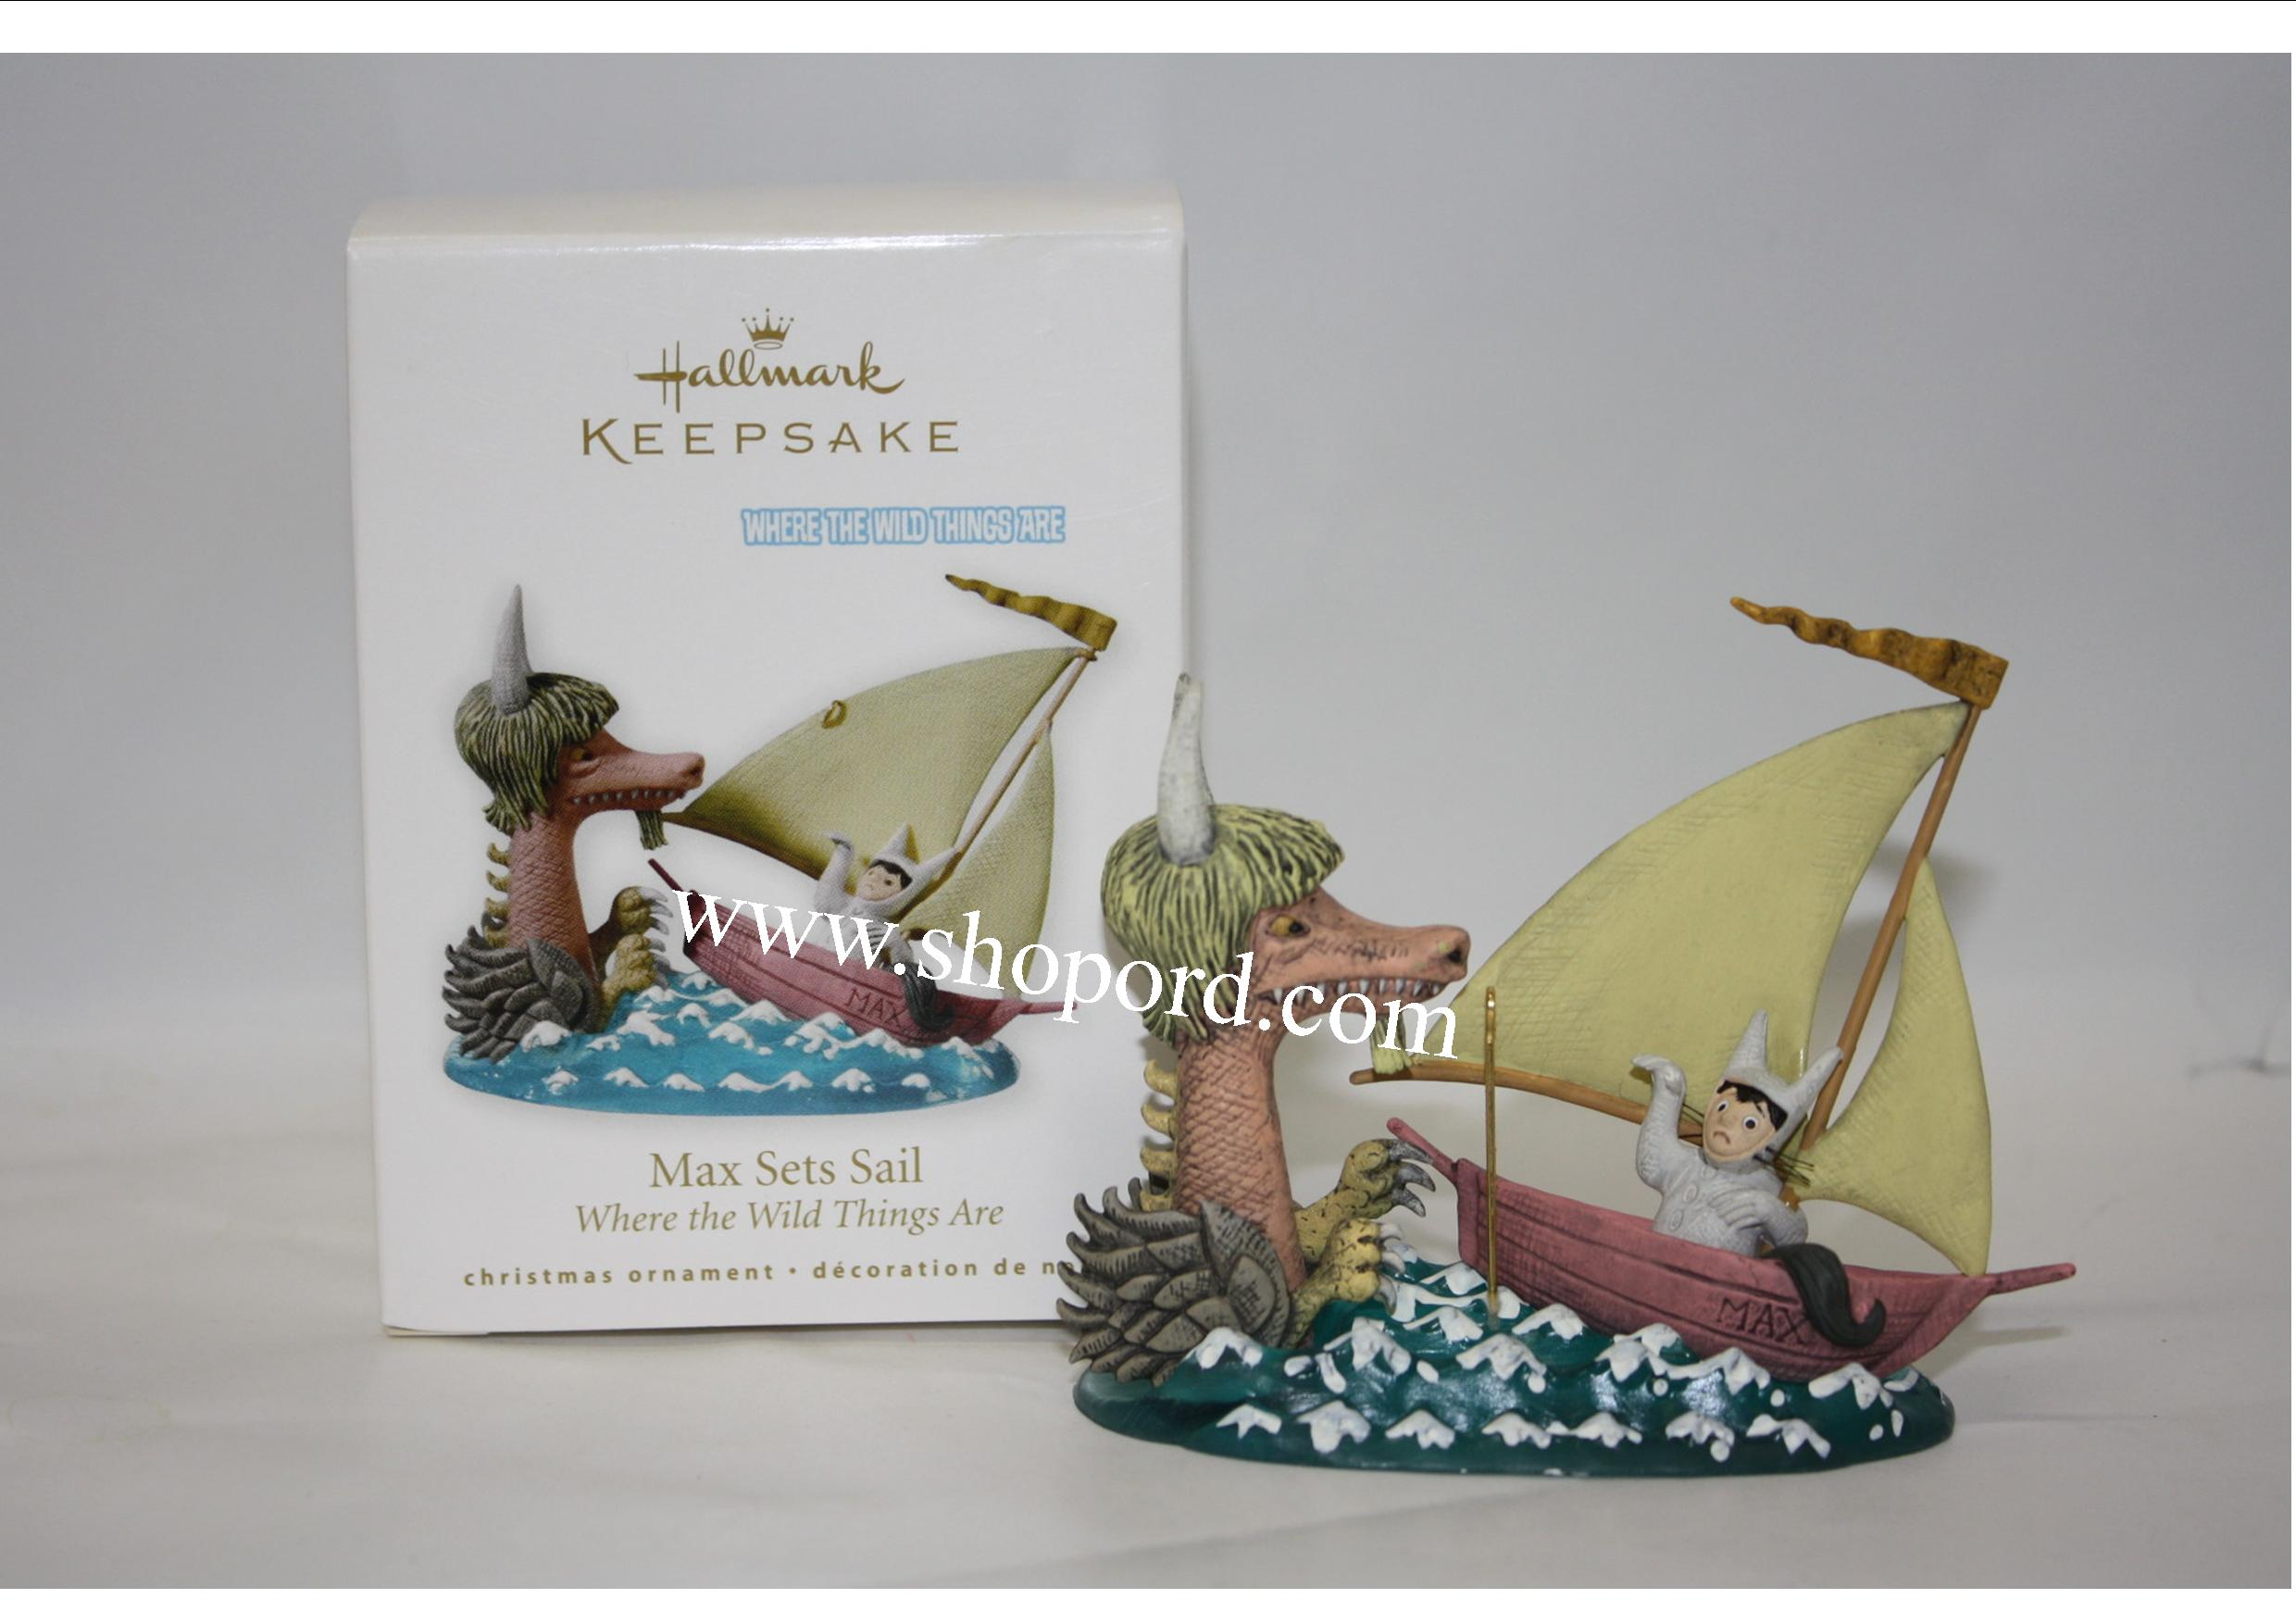 Hallmark 2010 Max Sets Sail Where the Wild Things Are Ornament QXI2083